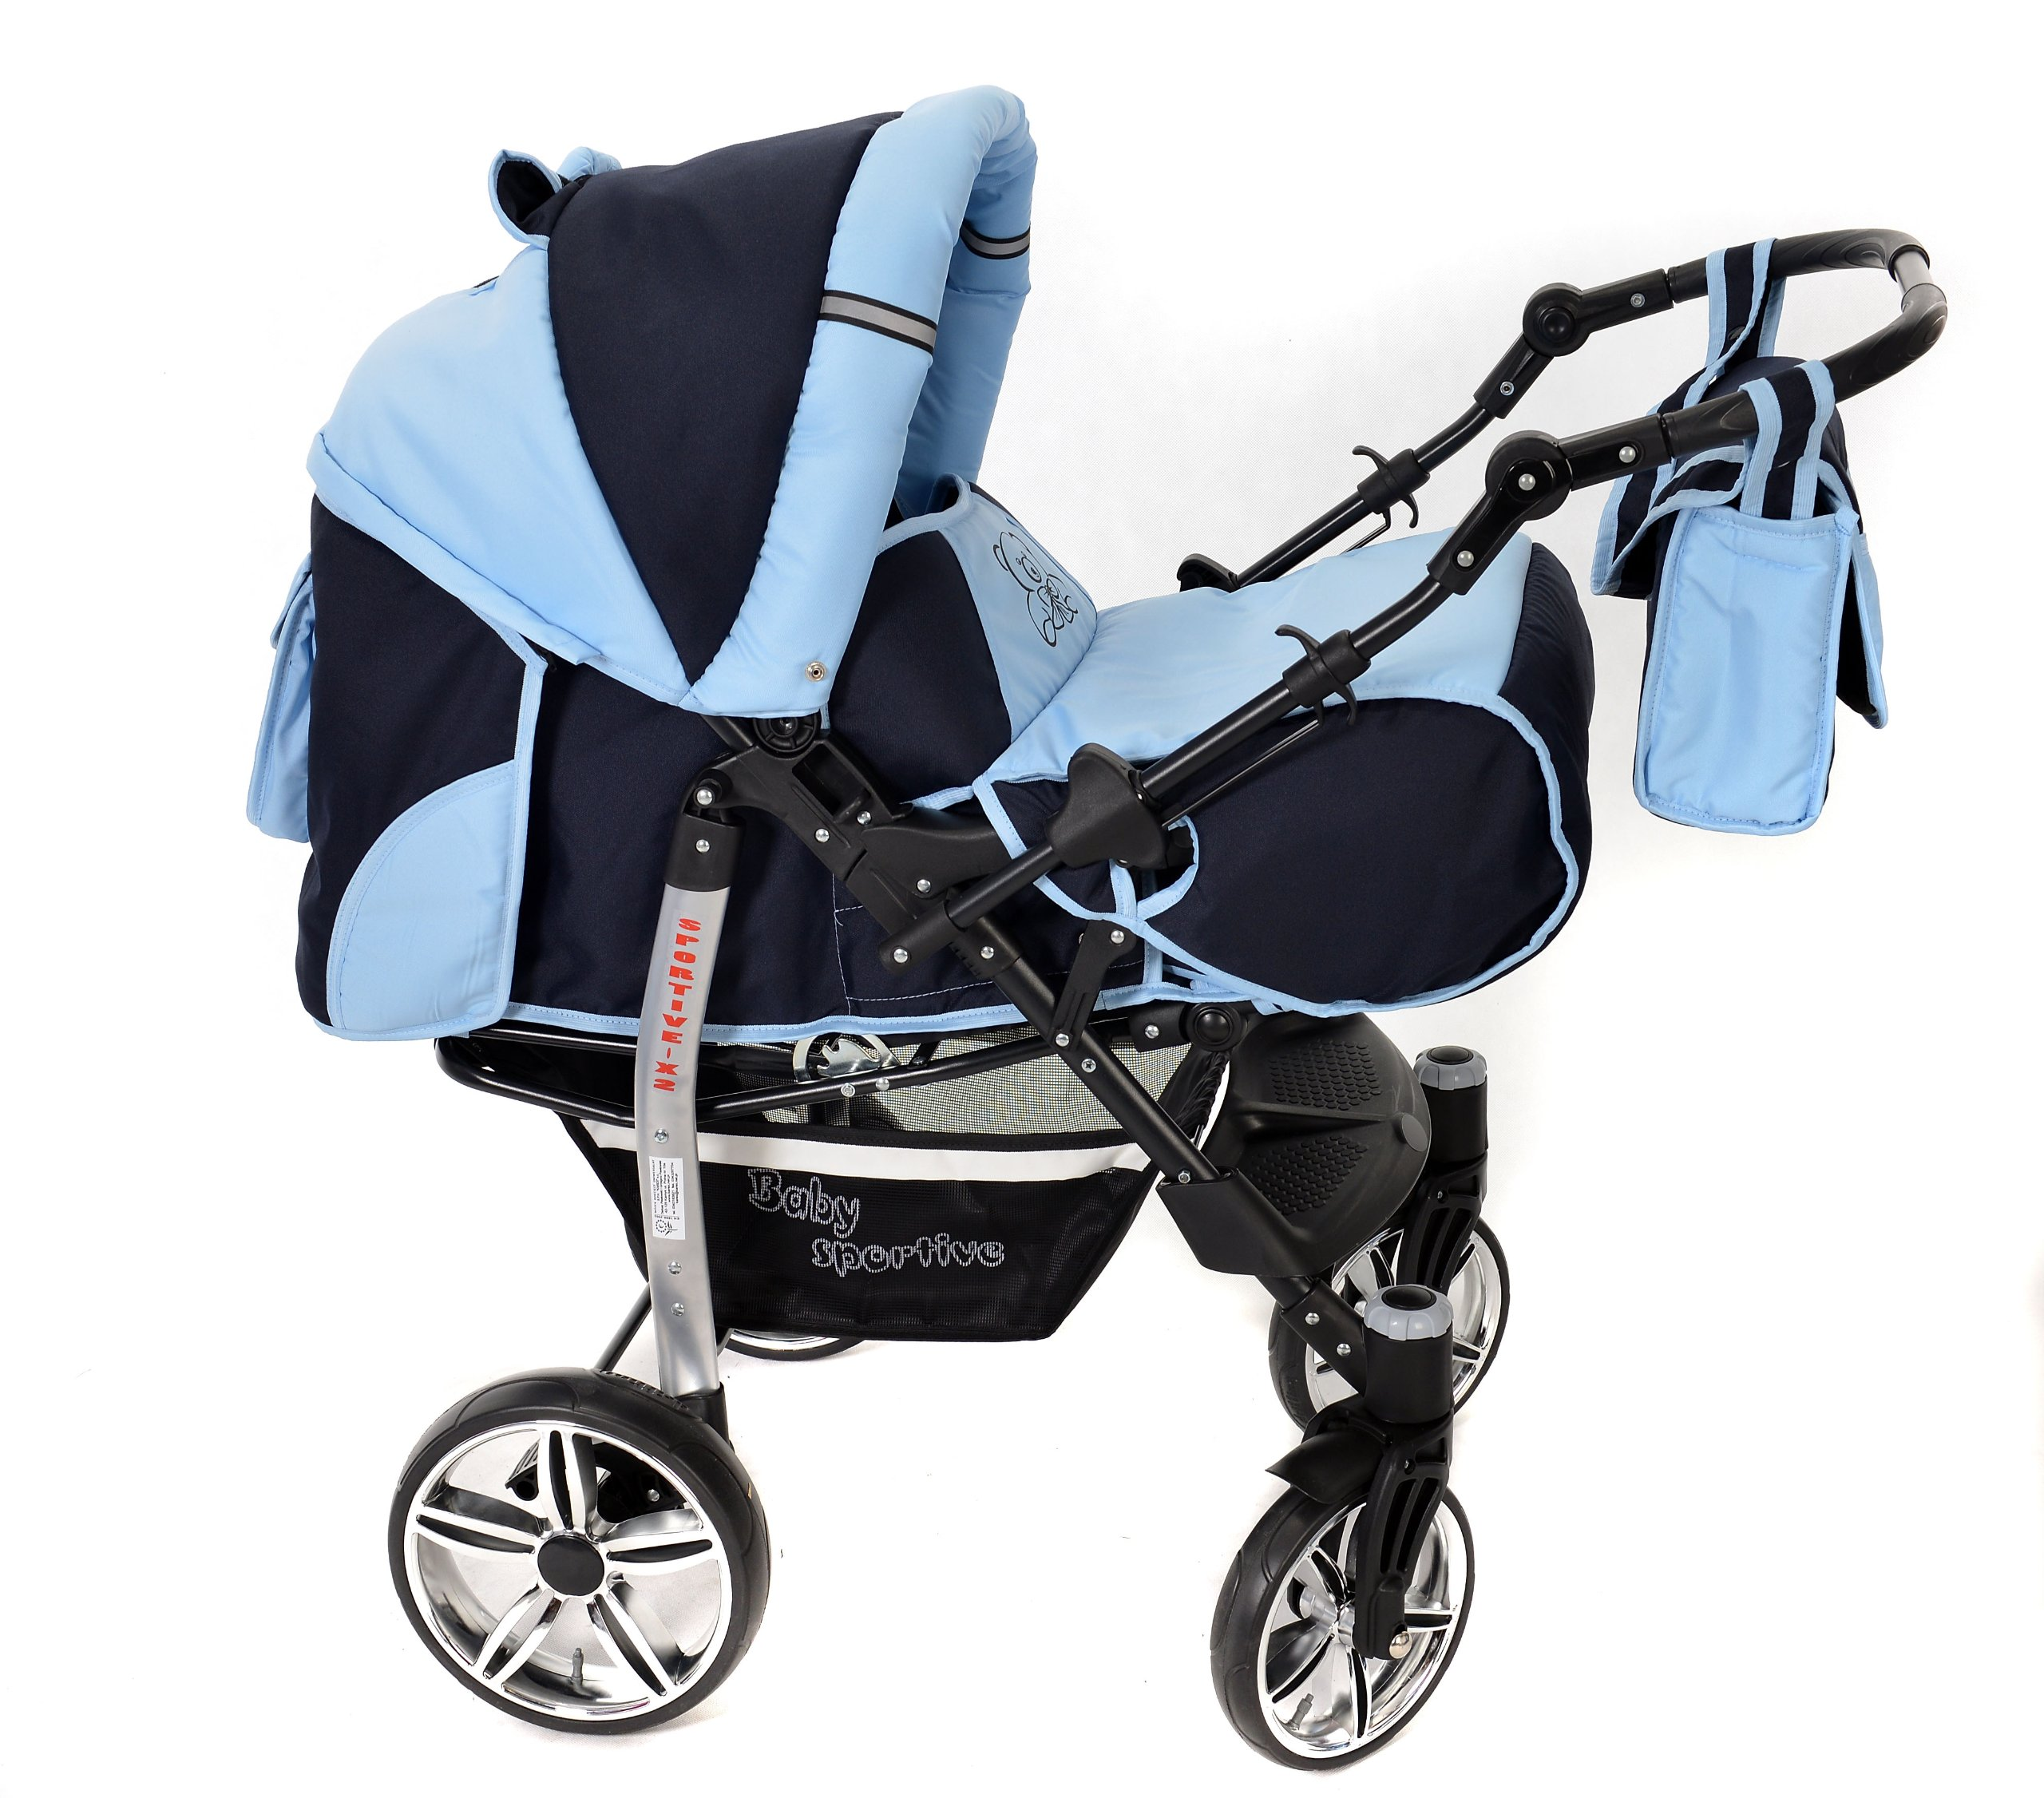 Sportive X2, 3-in-1 Travel System incl. Baby Pram with Swivel Wheels, Car Seat, Pushchair & Accessories (3-in-1 Travel System, Navy-Blue & Blue)  3 in 1 Travel System All in One Set - Pram, Car Carrier Seat and Sport Buggy + Accessories: carrier bag, rain protection, mosquito net, changing mat, removable bottle holder and removable tray for your child's bits and pieces Suitable from birth, Easy Quick Folding System; Large storage basket; Turnable handle bar that allows to face or rear the drive direction; Quick release rear wheels for easy cleaning after muddy walks Front lockable 360o swivel wheels for manoeuvrability , Small sized when folded, fits into many small car trunks, Carry-cot with a removable hood, Reflective elements for better visibility 2